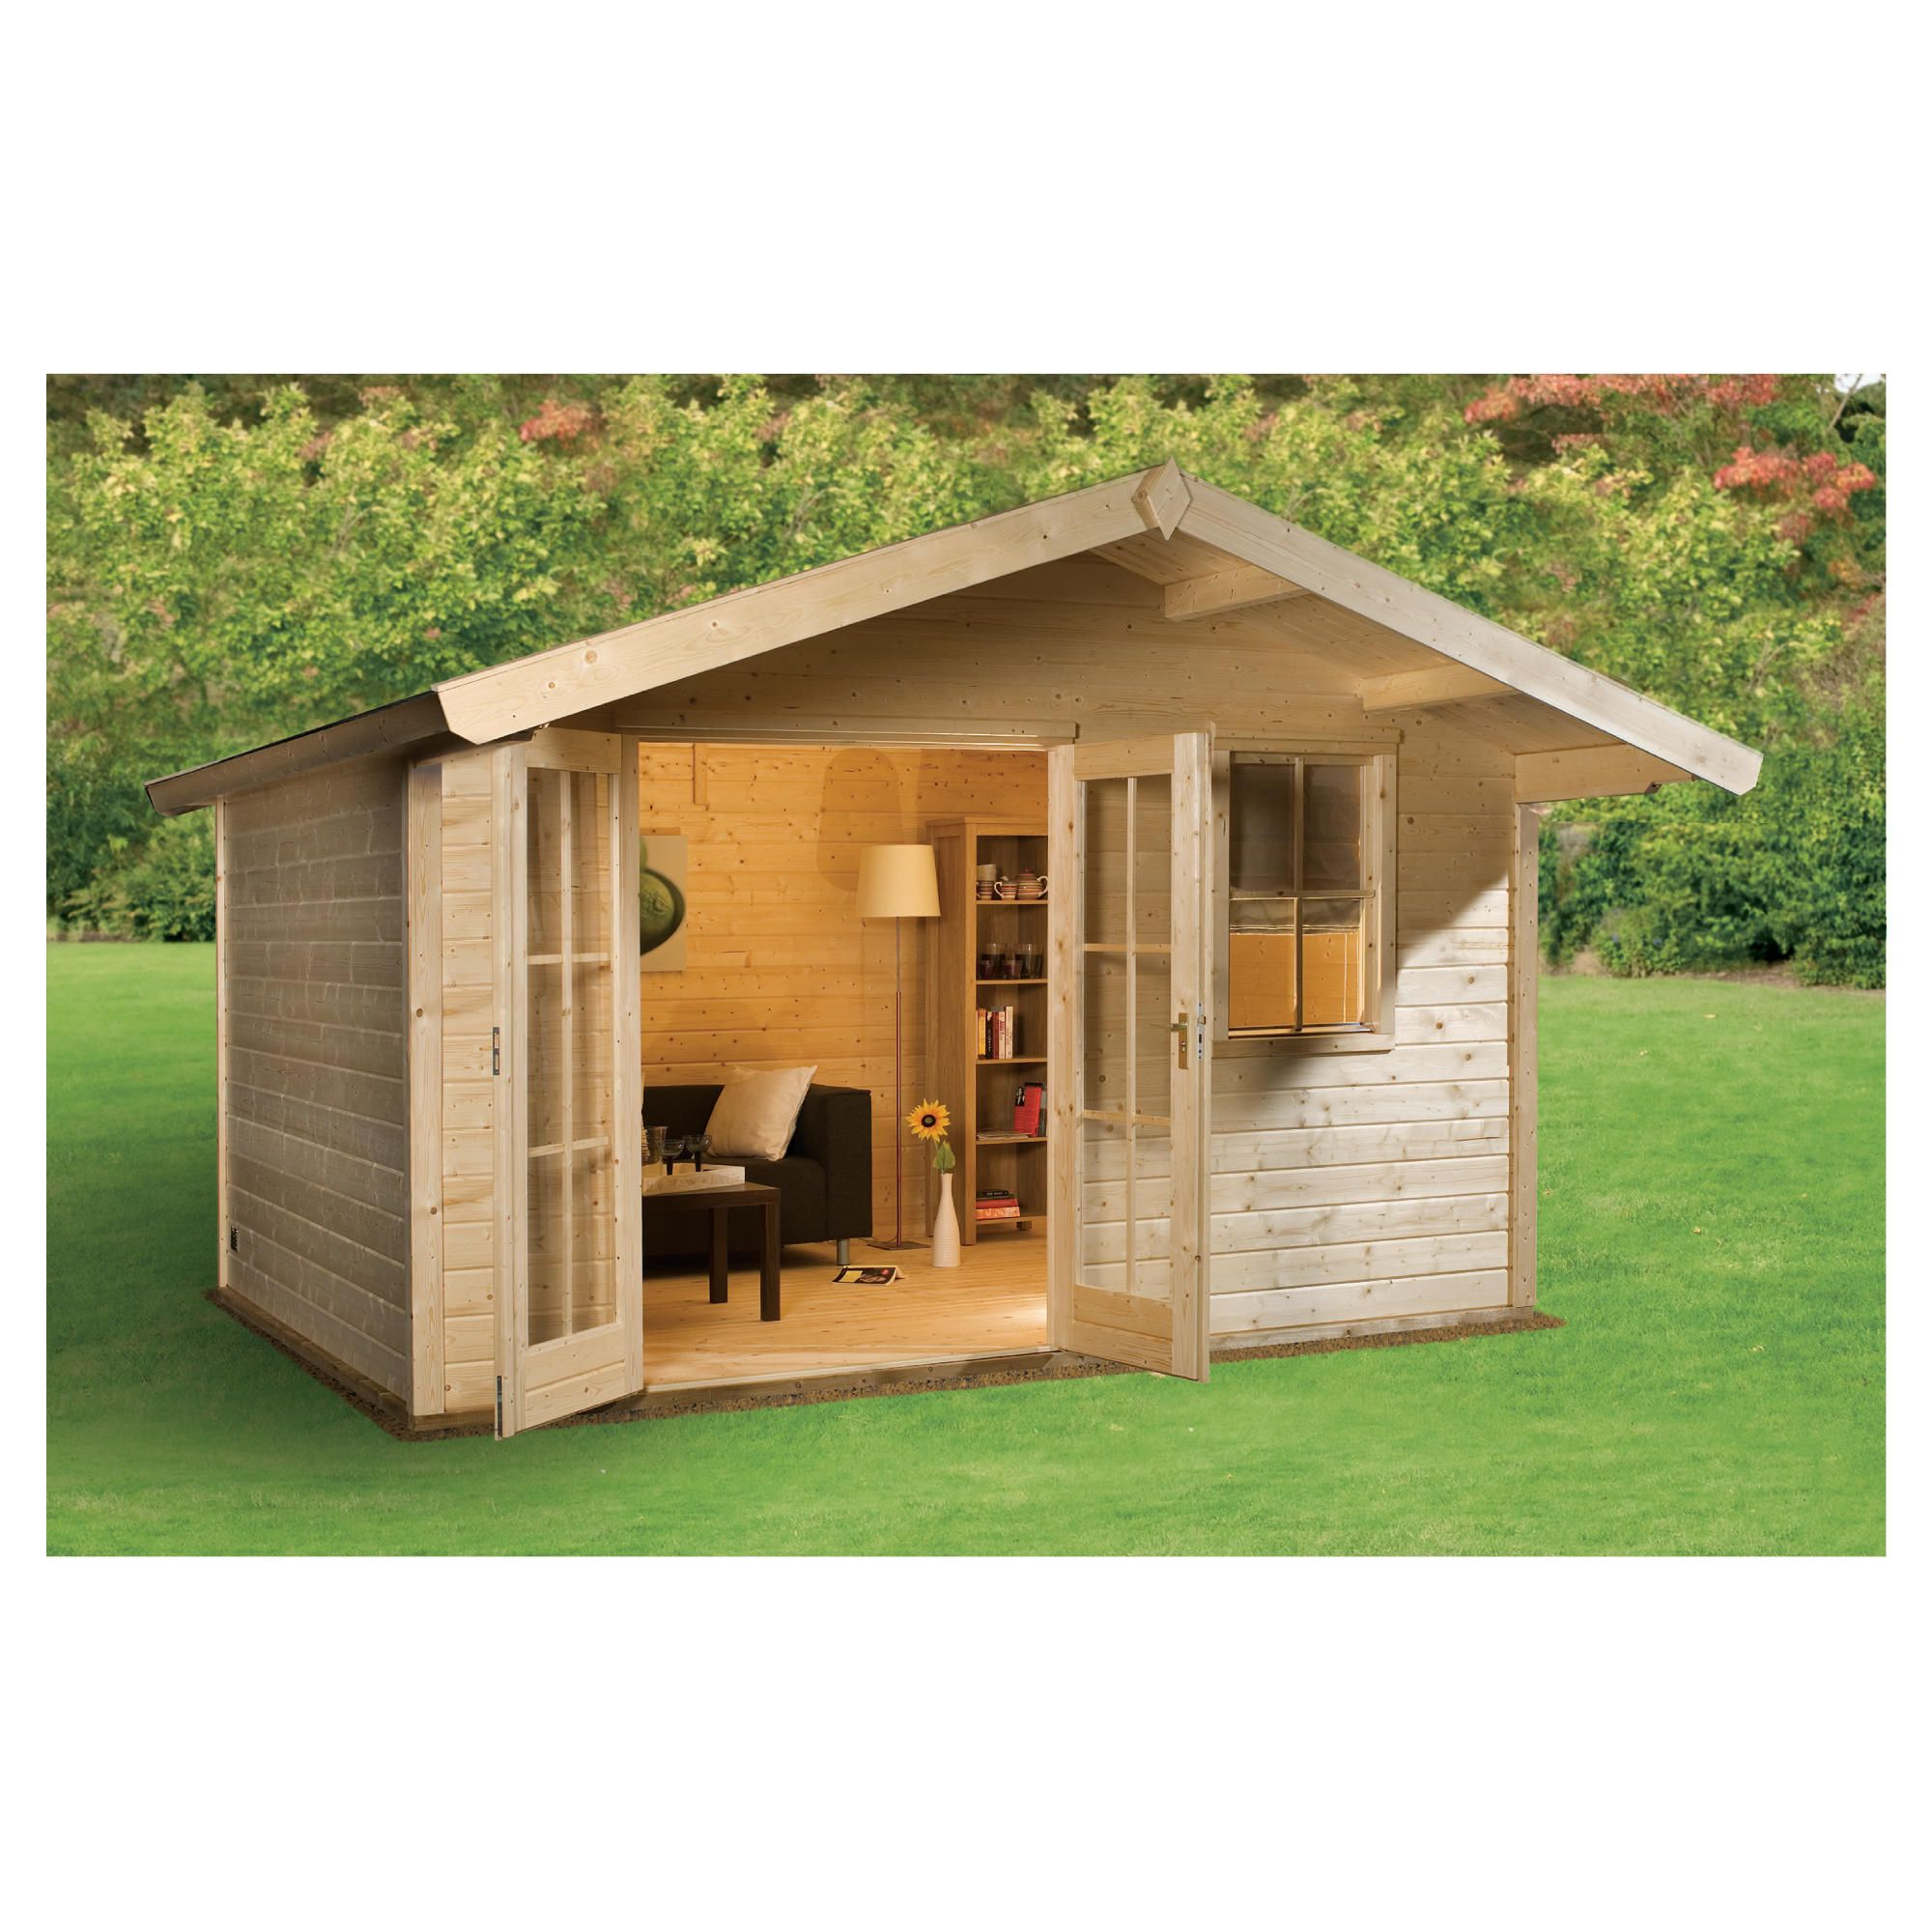 Finnlife MOKKI 212 Log Cabin at Tesco Direct